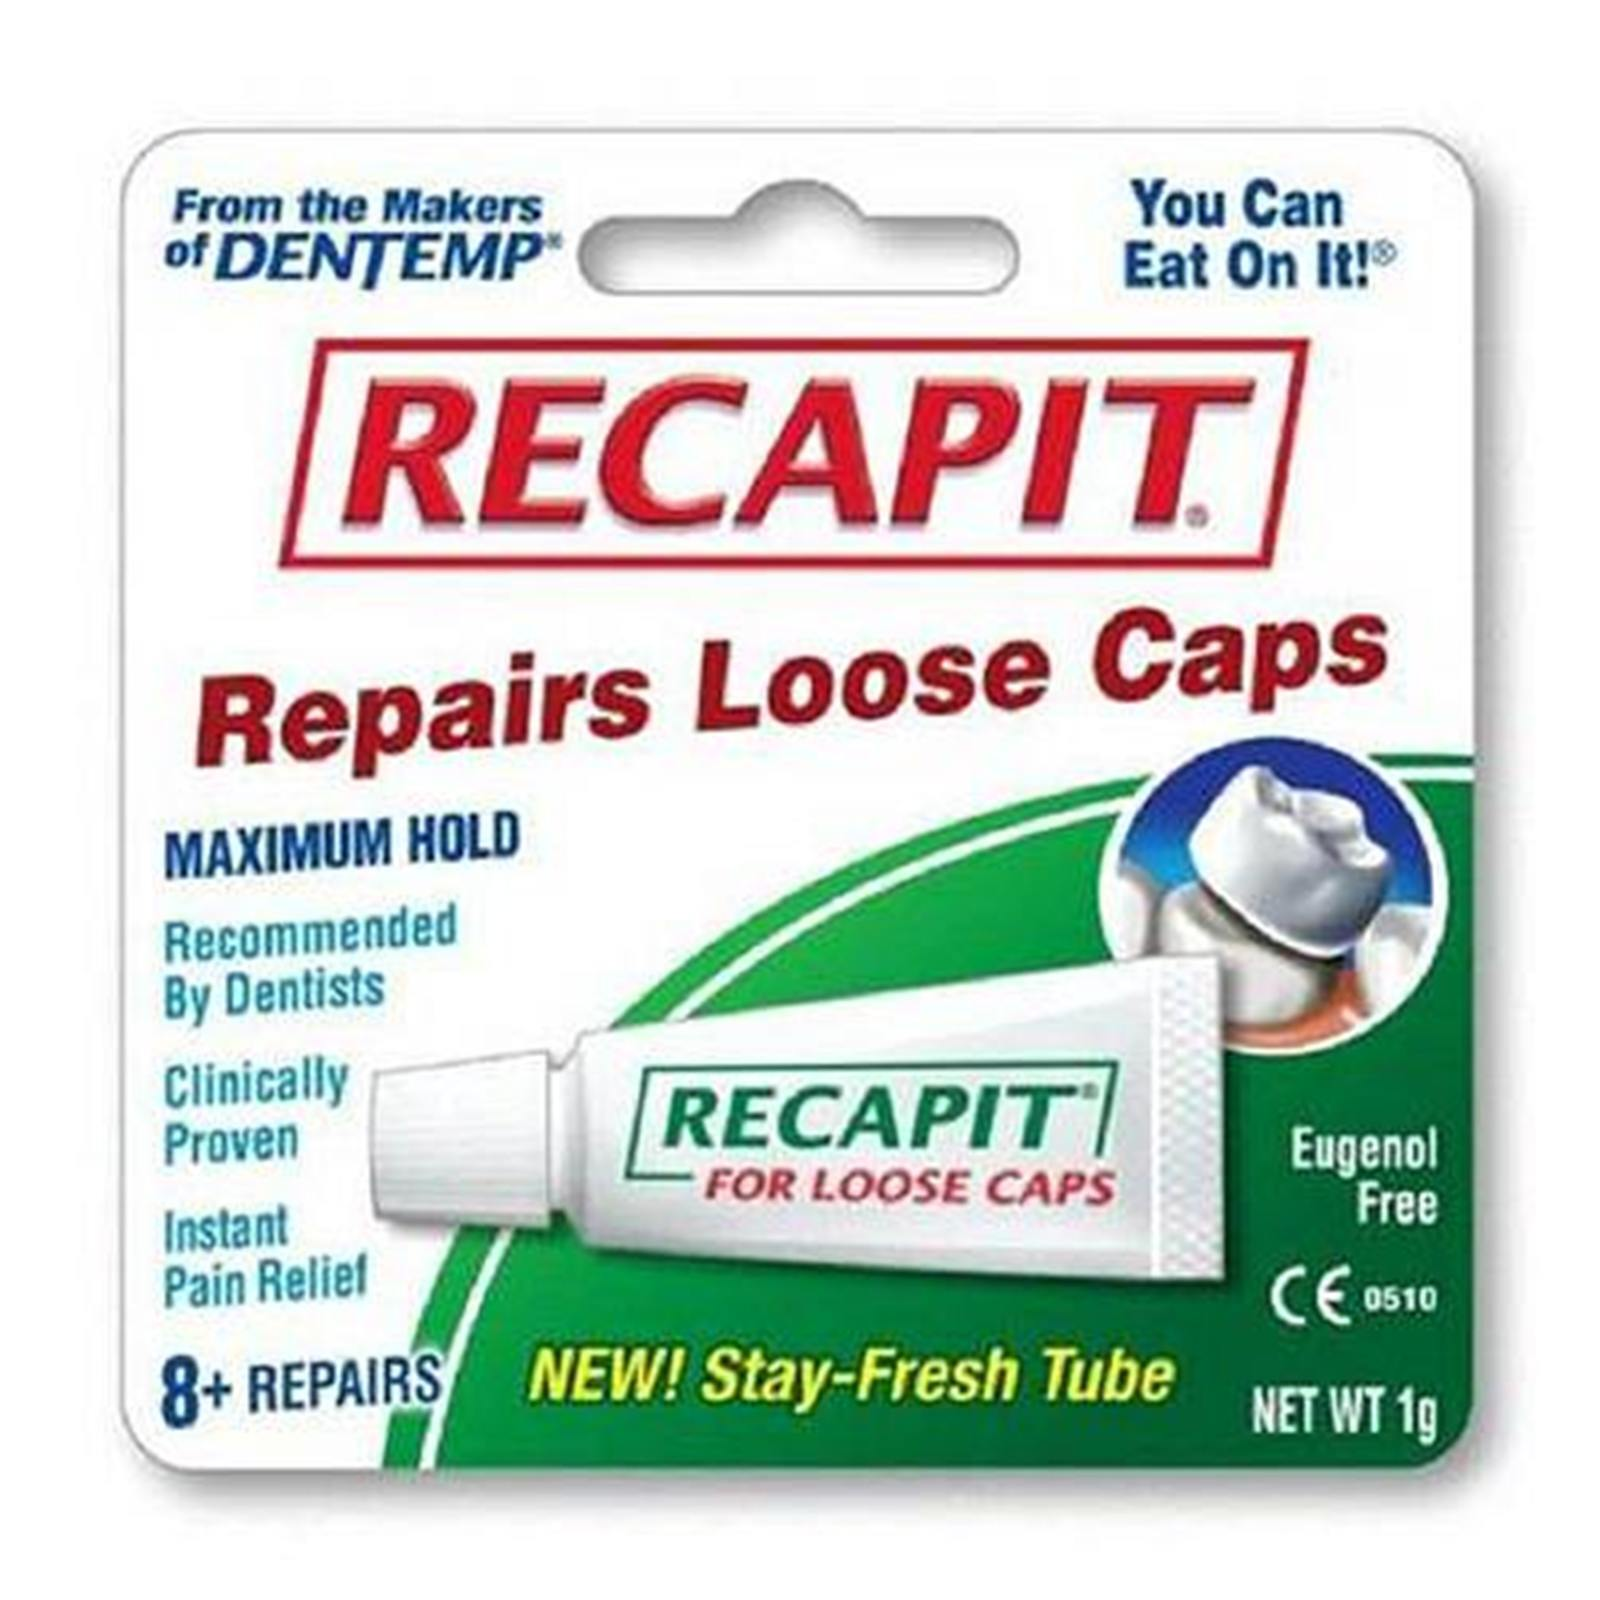 Recapit Dental Repair Cement For Loose Caps - Kit - eBay